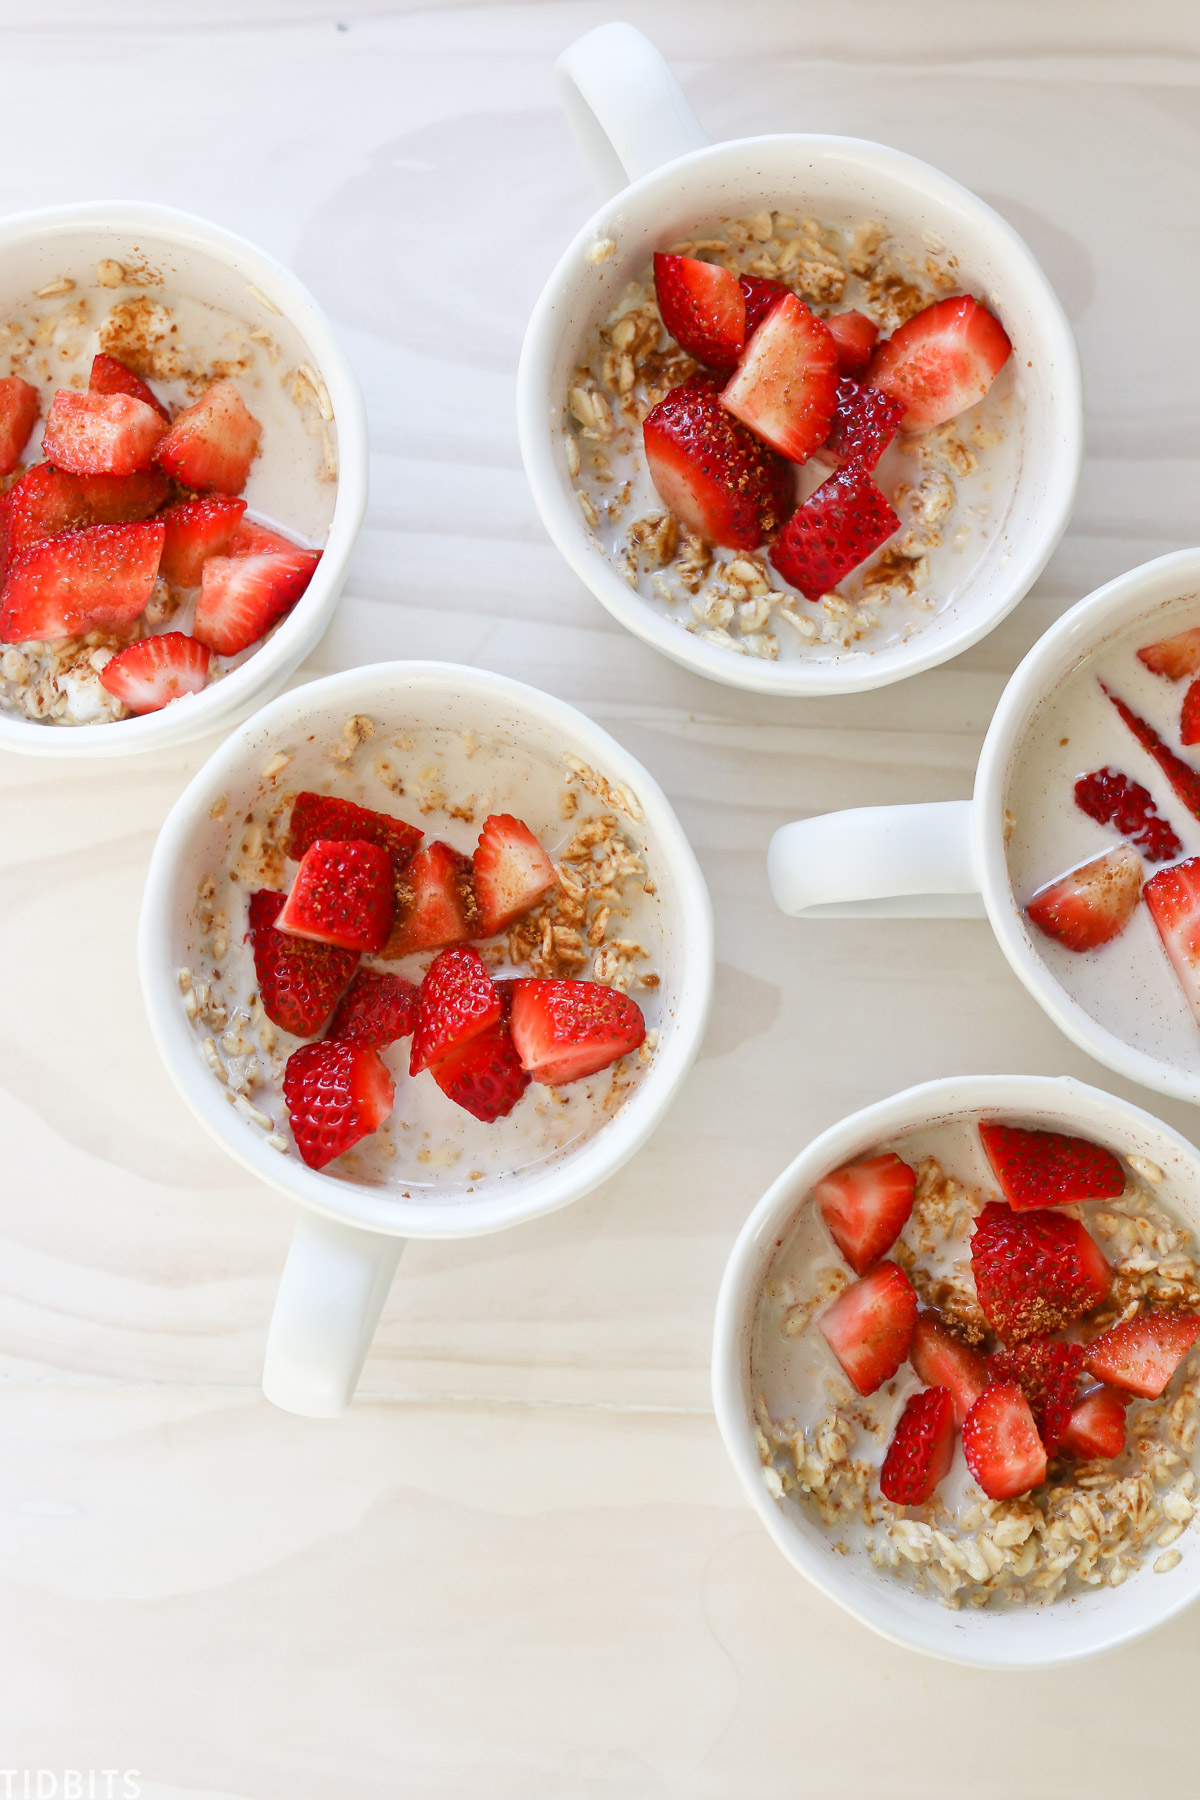 Simple camping meals, overnight oats